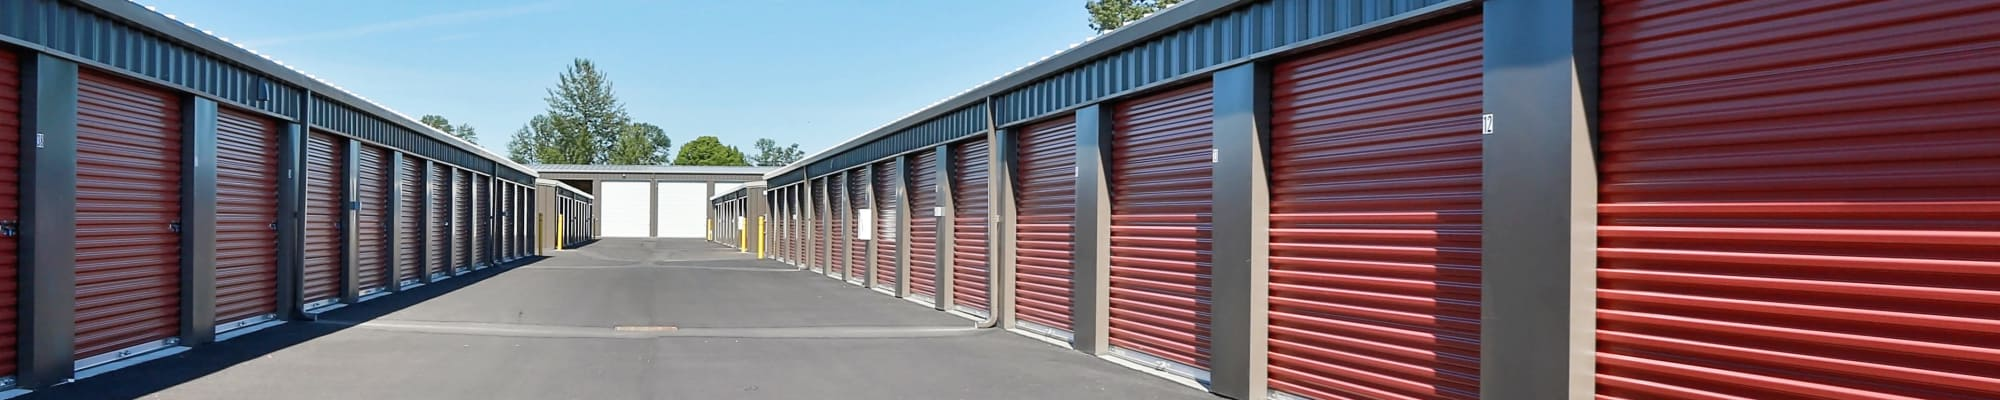 Contact Us at Nest Self Storage in Salem, Oregon